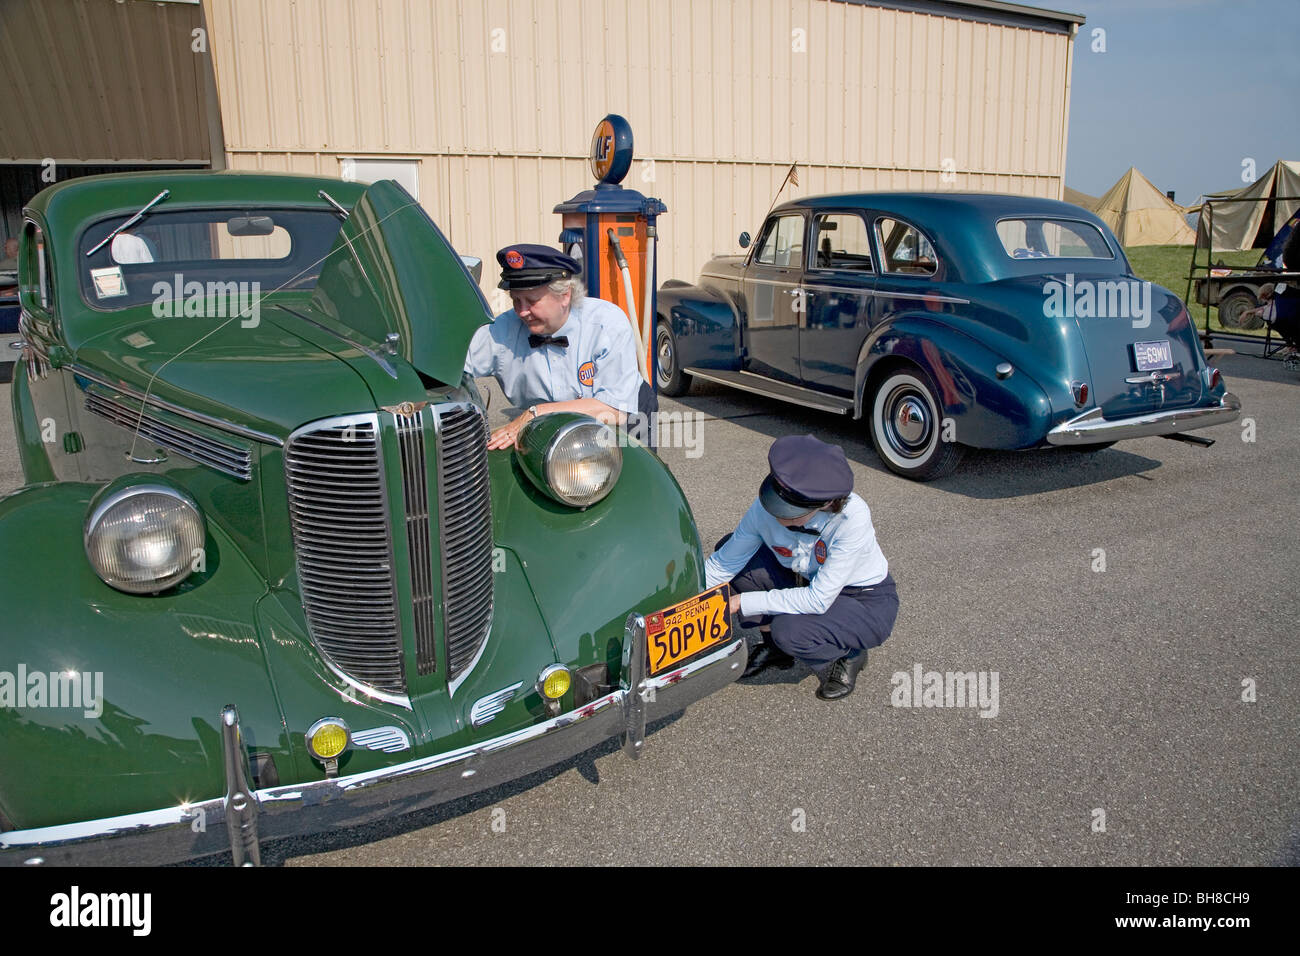 Reenactment of two women gas attendants servicing 1940s car during World War II at Mid-Atlantic Air Museum World - Stock Image